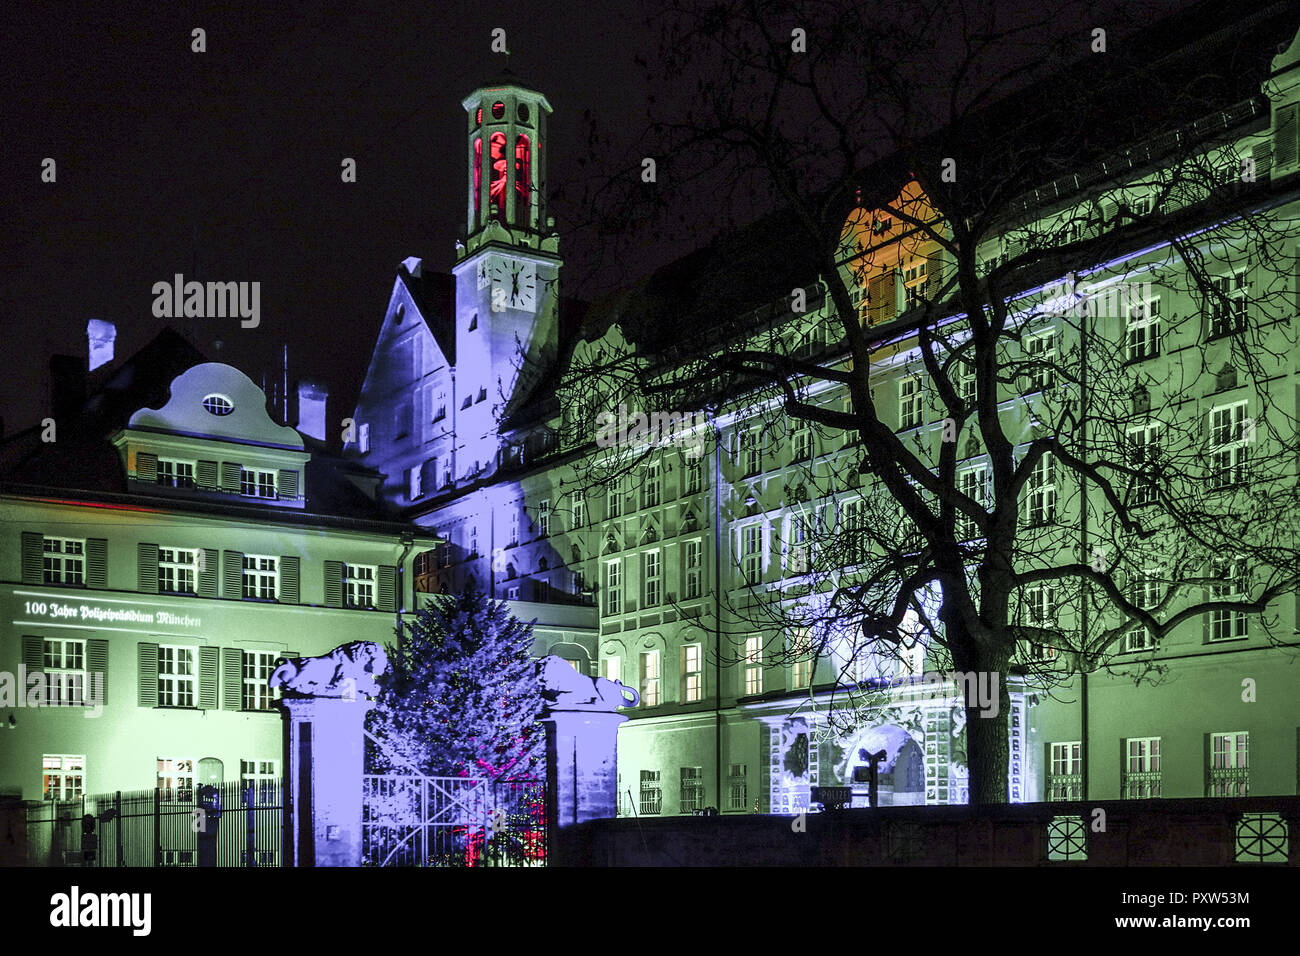 Farbig beleuchtetes Polizeipräsidium in München, Löwengrube, Colored lighted police headquarters in Munich at Night, Germany, Bavaria, Munich, Police, - Stock Image